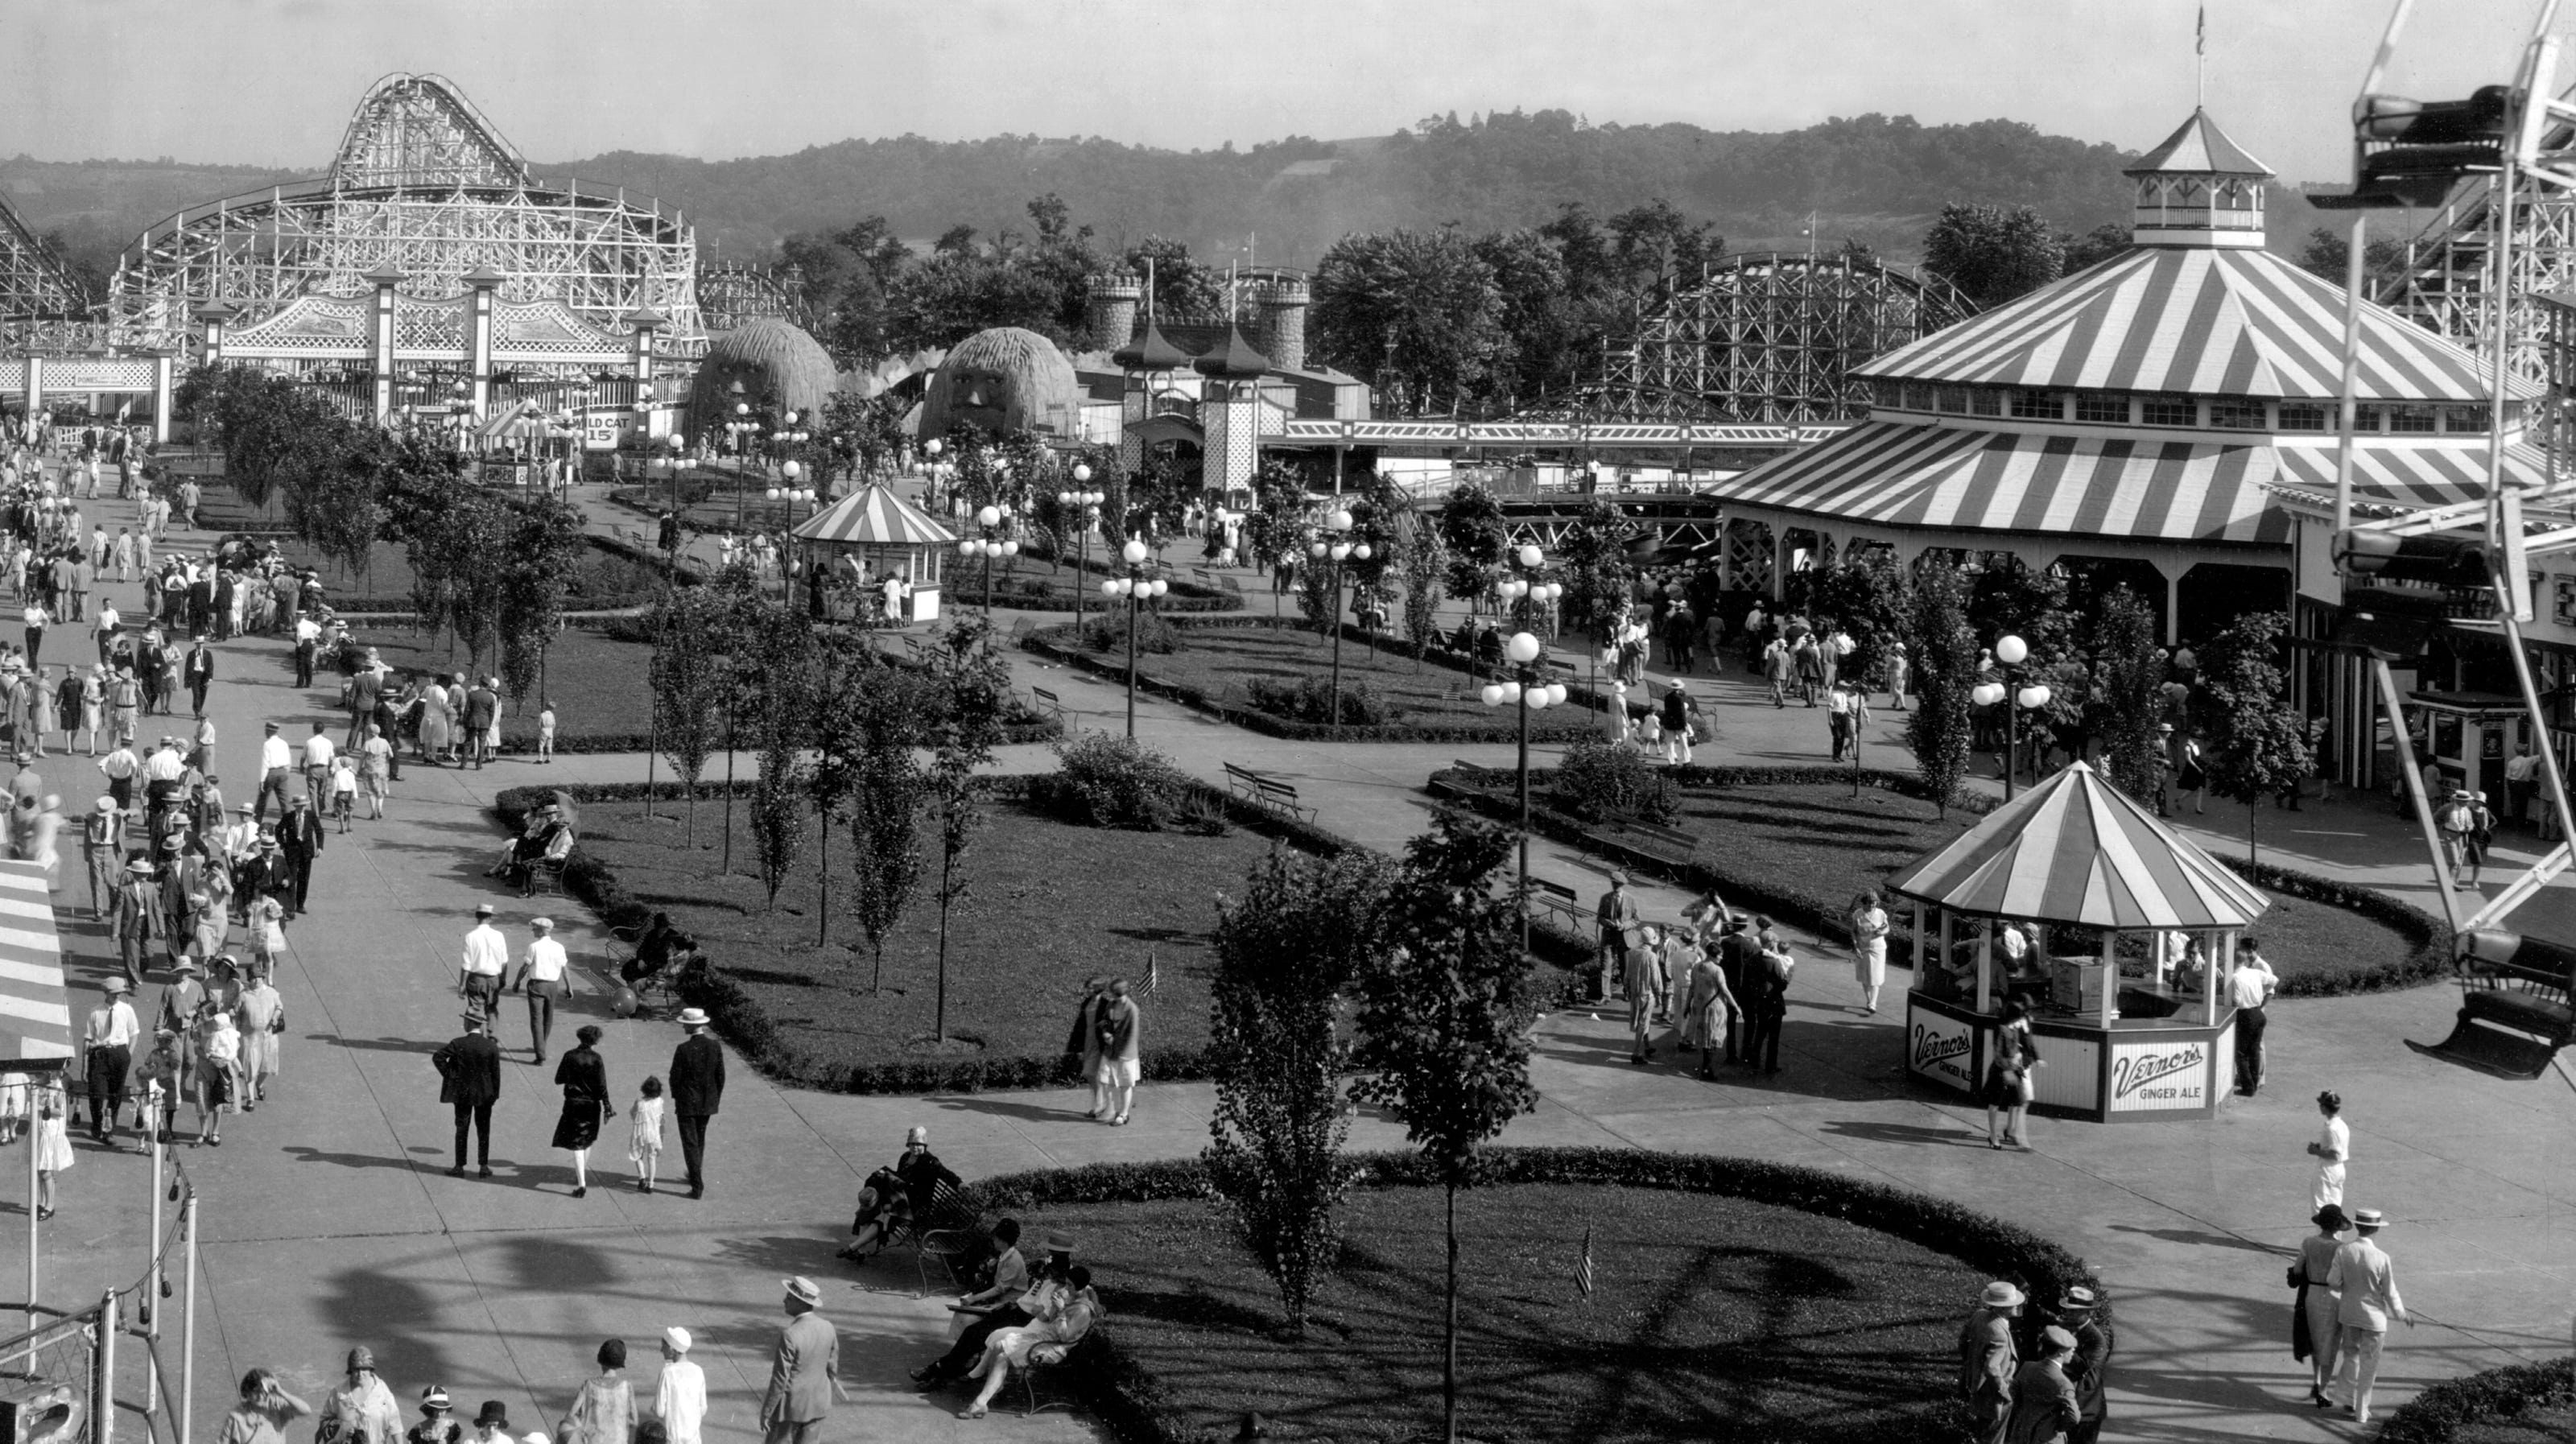 A history of the area's favorite amusement parks